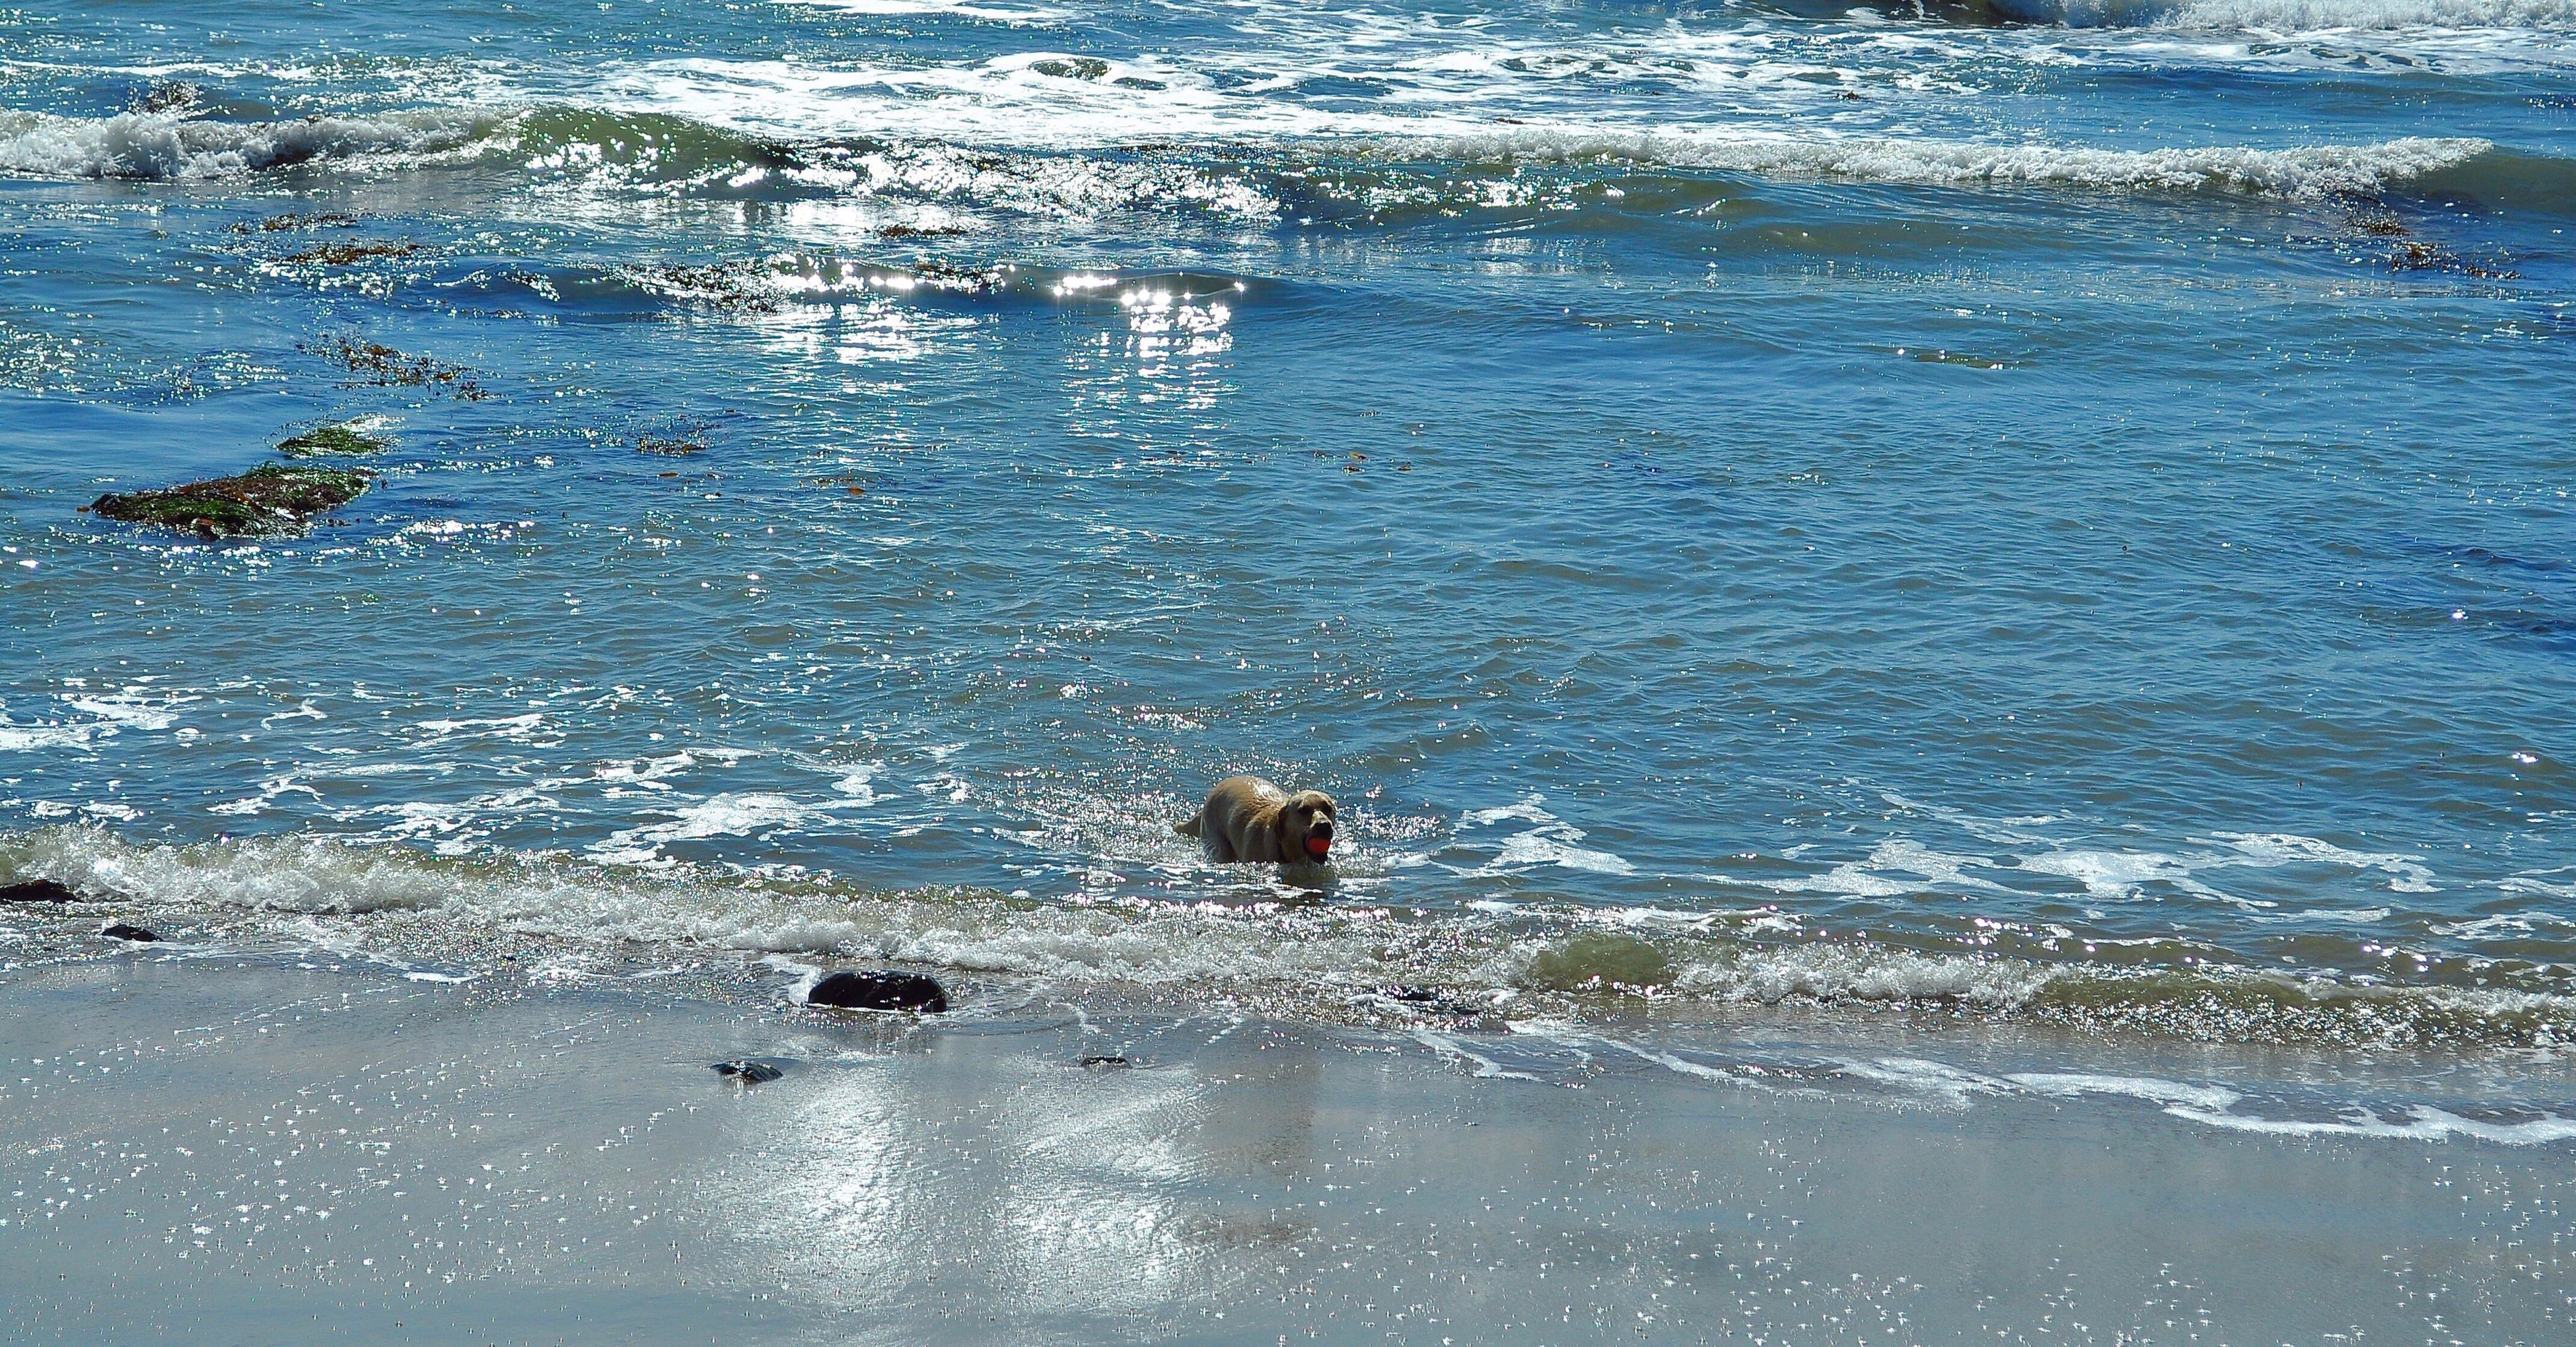 animal themes, water, one animal, animals in the wild, sea, wildlife, dog, mammal, swimming, high angle view, beach, nature, waterfront, pets, wave, domestic animals, shore, rippled, day, bird